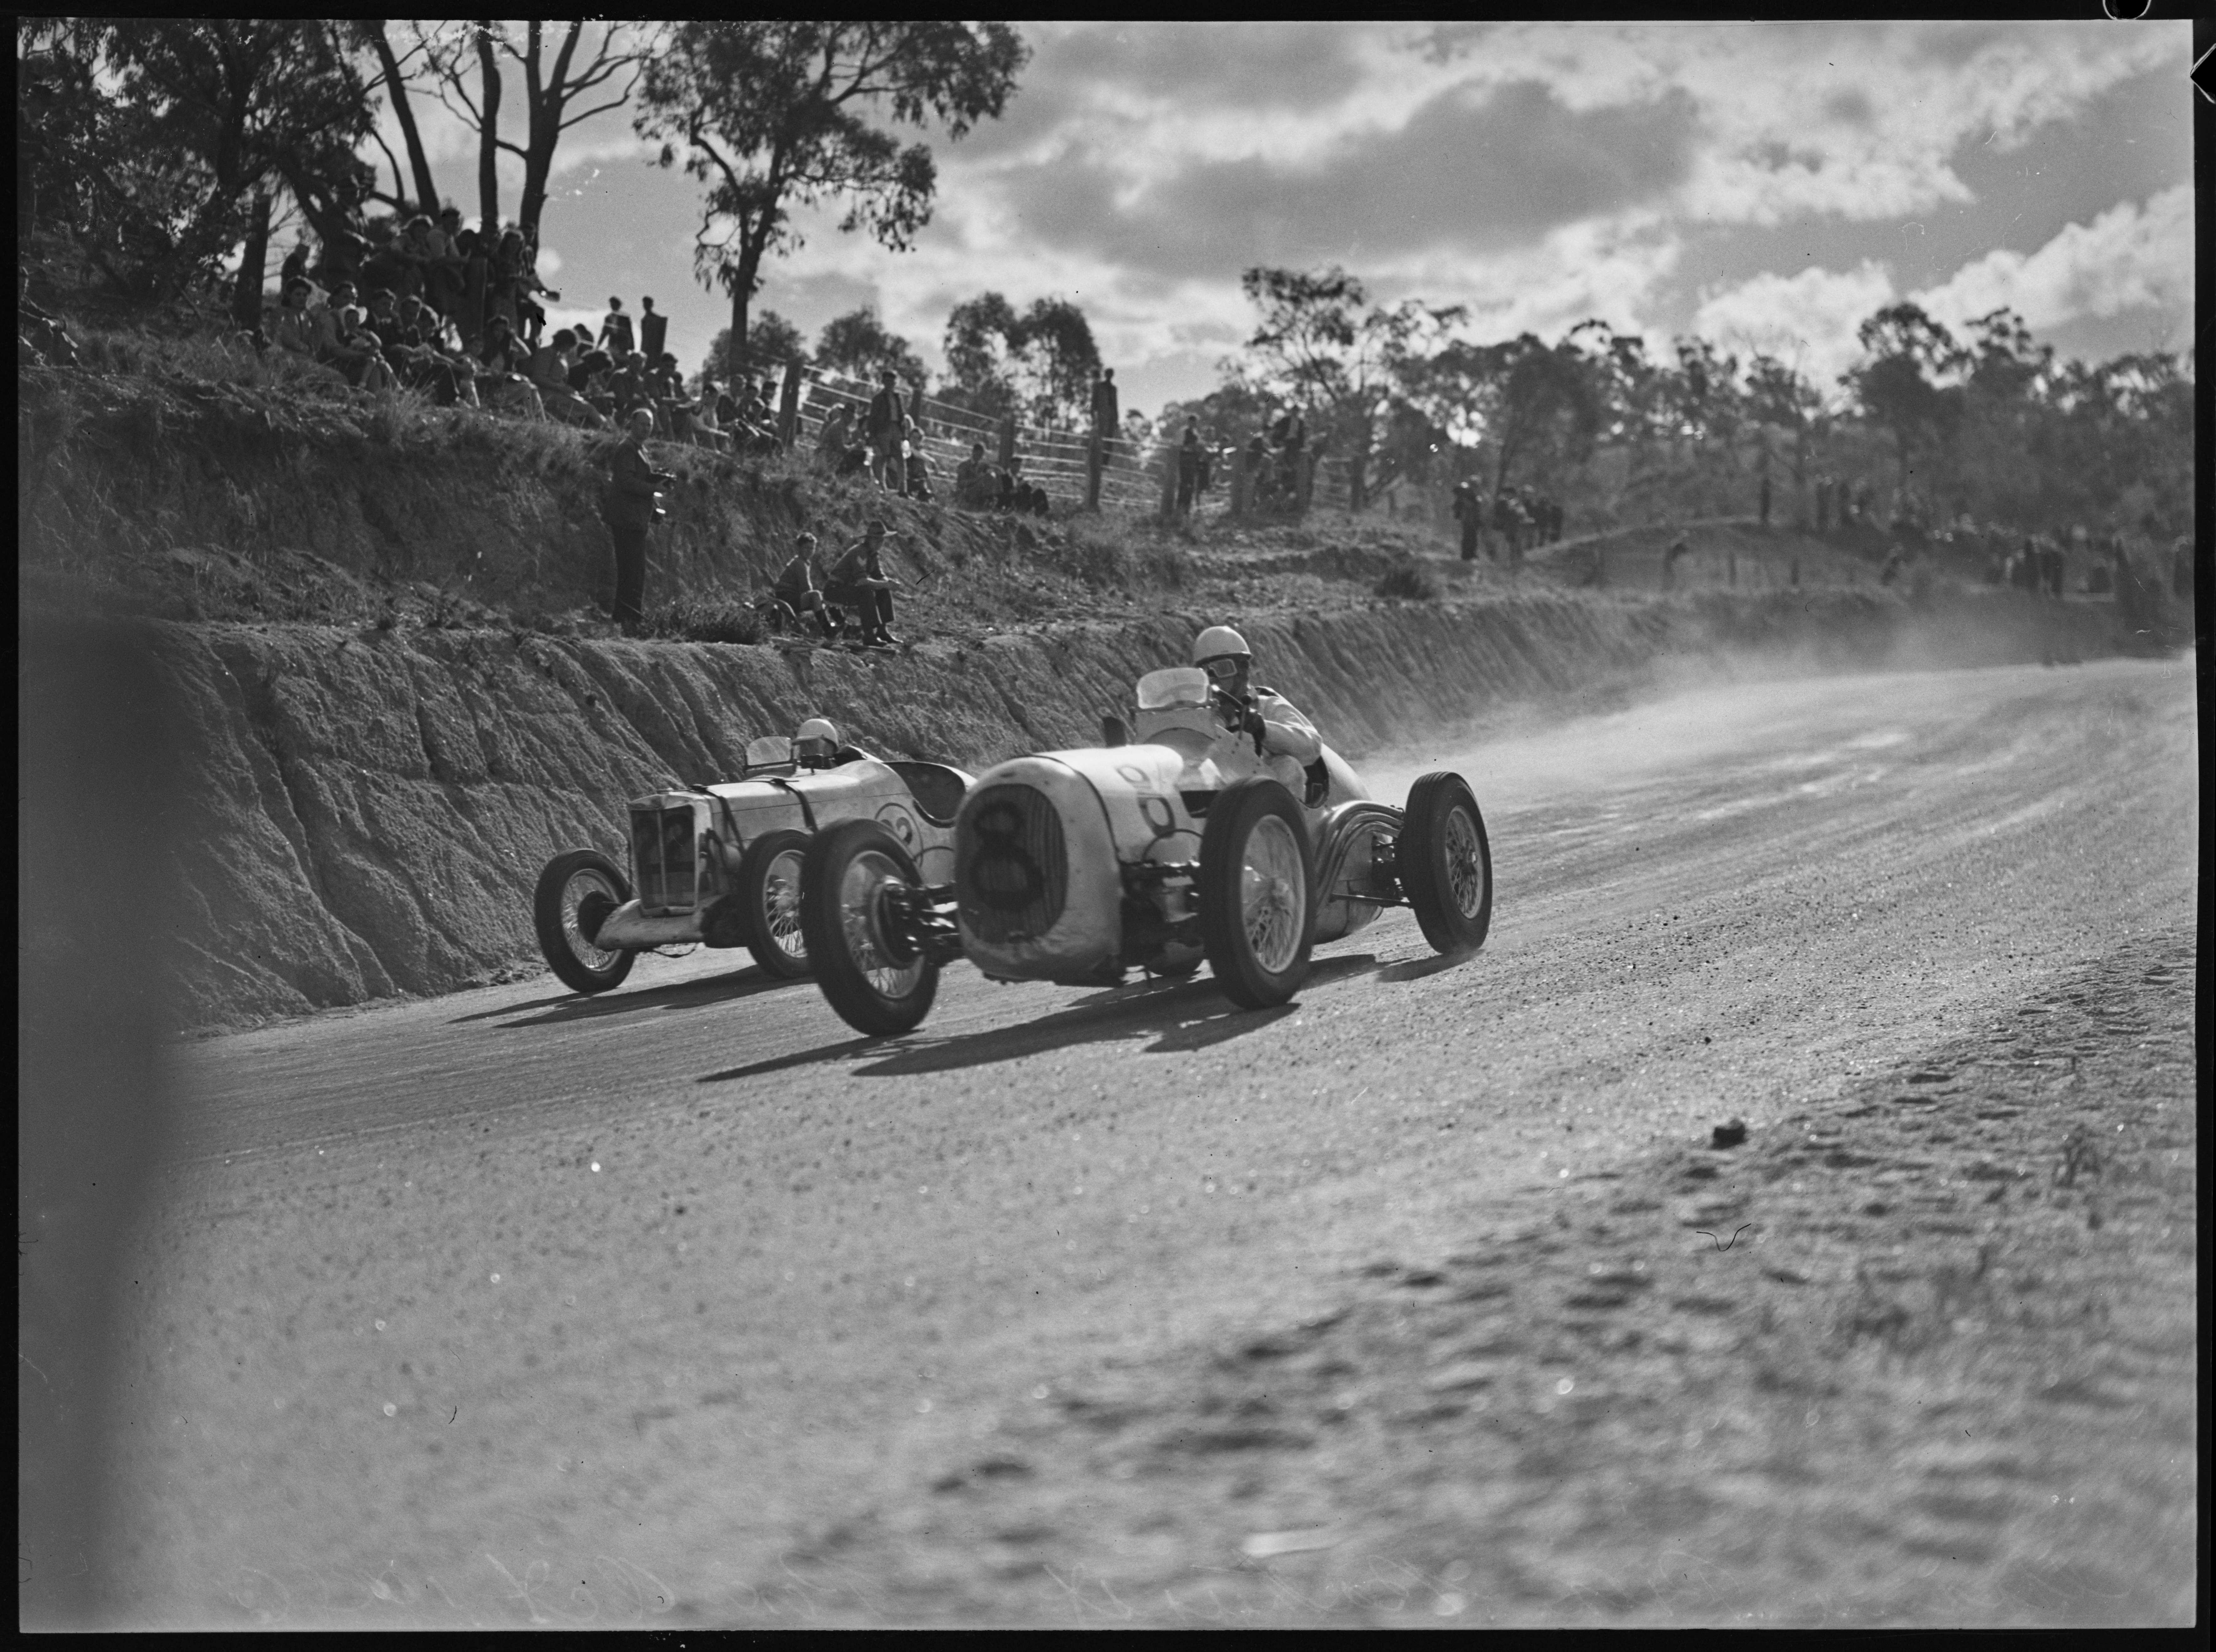 No. 8, Alec Mildren in His Ford V8 Special, cornering next to Jack Nind in his MG TB Special, Grand Prix, Bathurst, October 1946